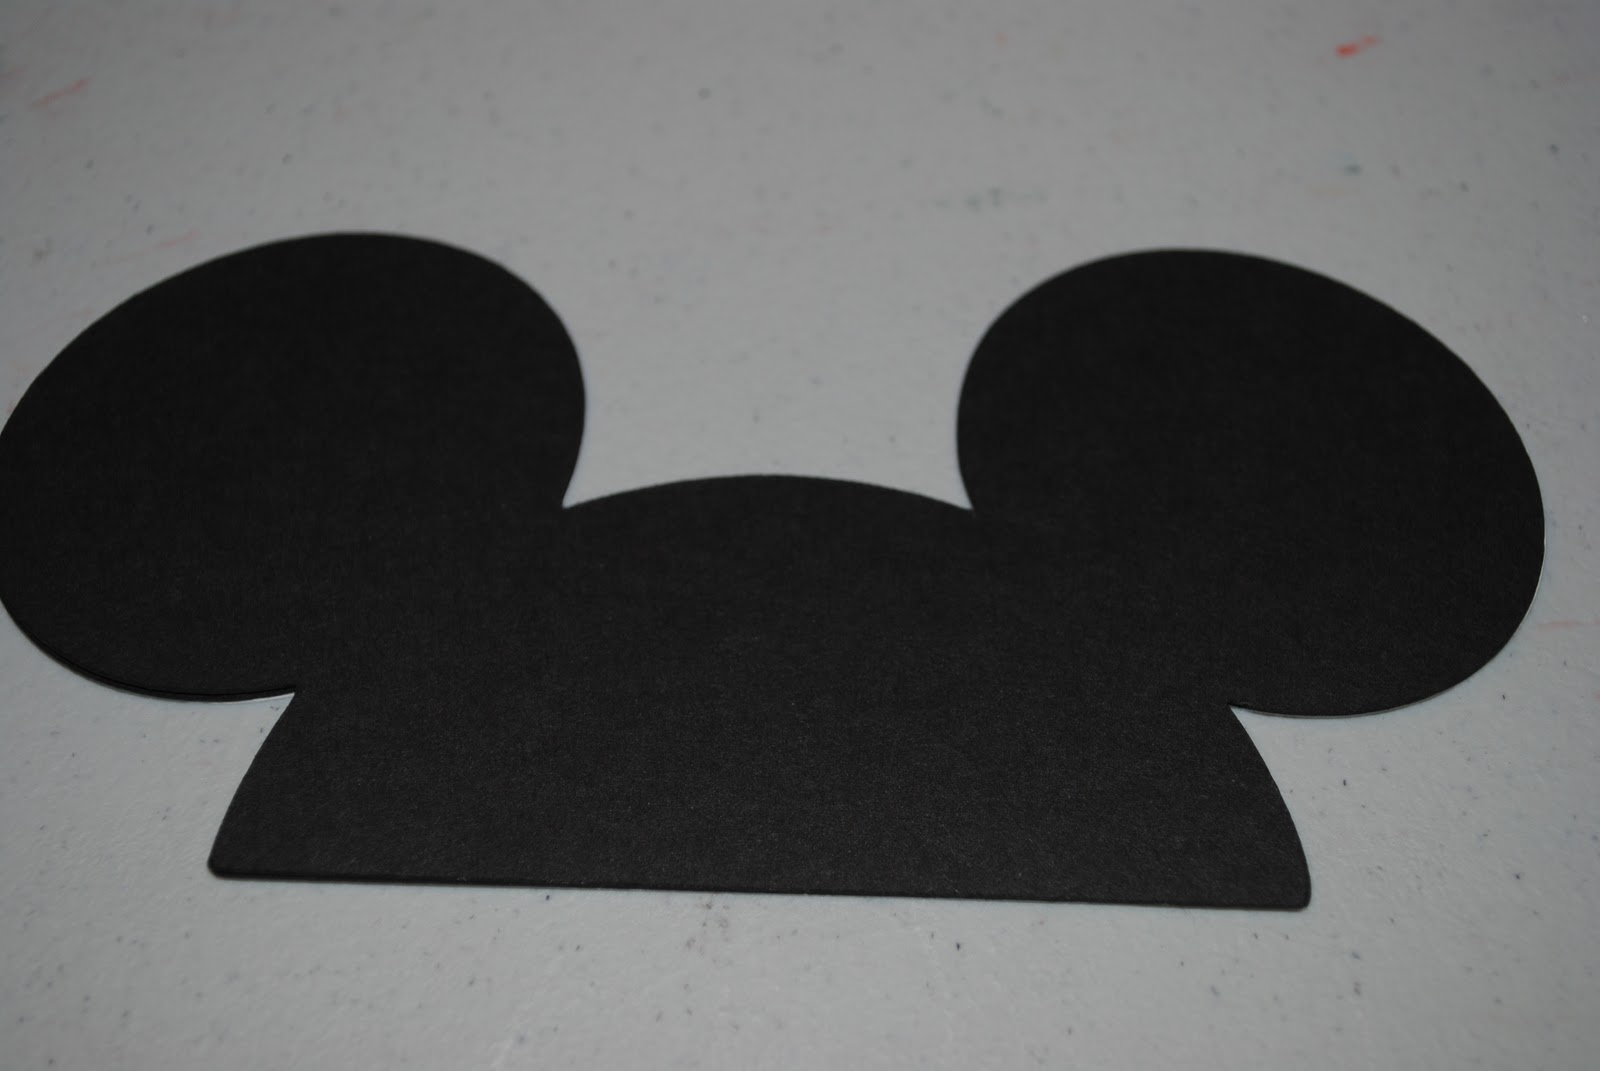 ... Free Mickey Mouse Ears For Cameo Silhouette download ...